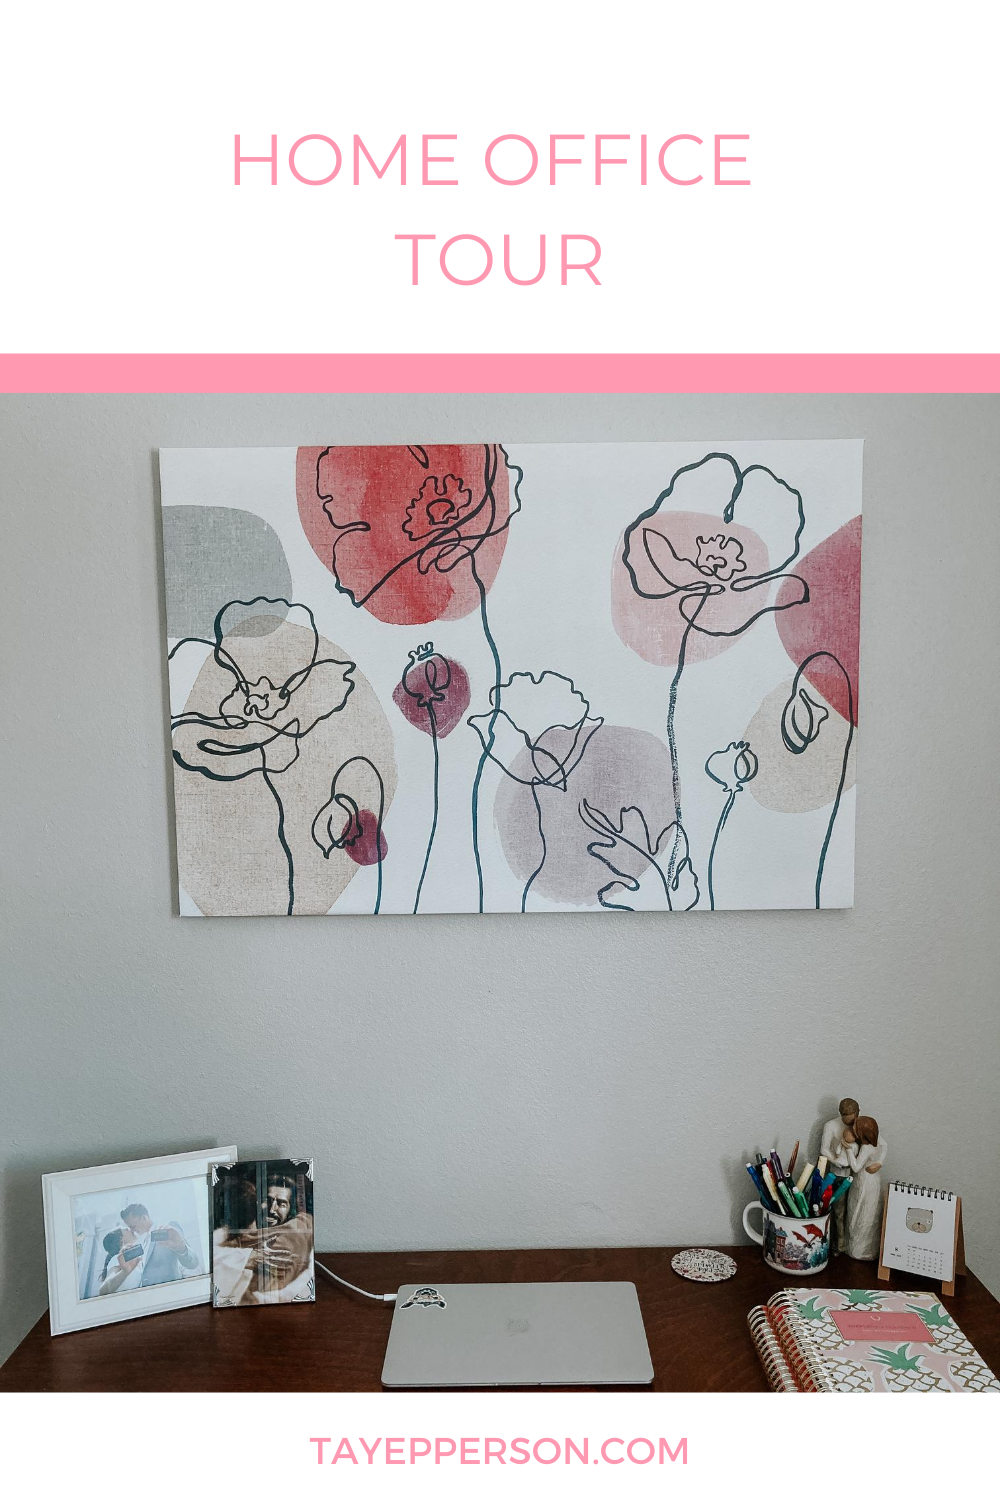 Home Office Tour - Bookish Tay